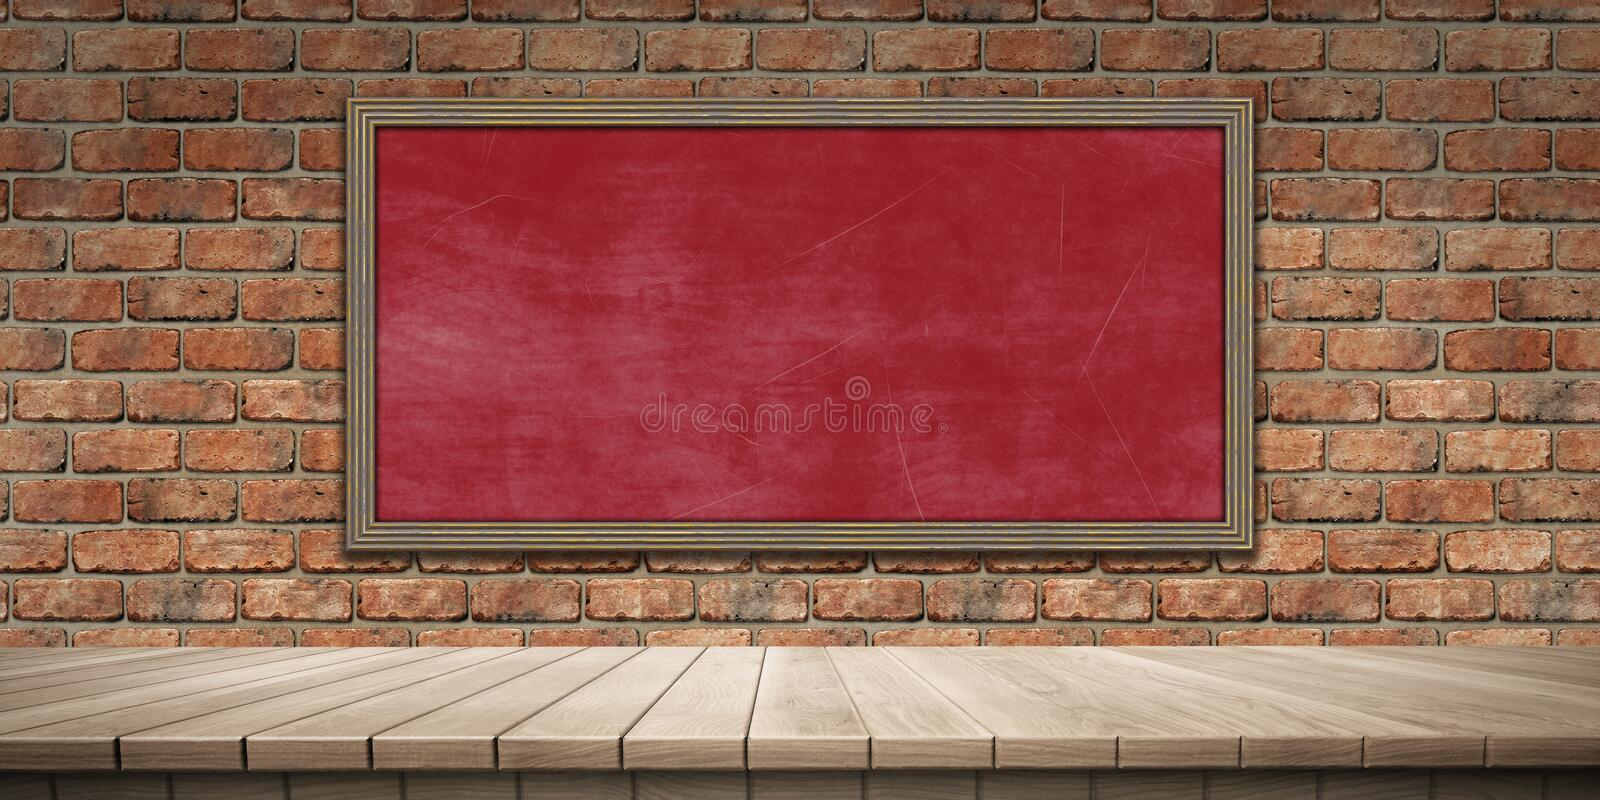 Closeup of colorful wooden platform and blackboard/chalkboard background, front view. High-resolution 3D CG rendering illustration royalty free illustration